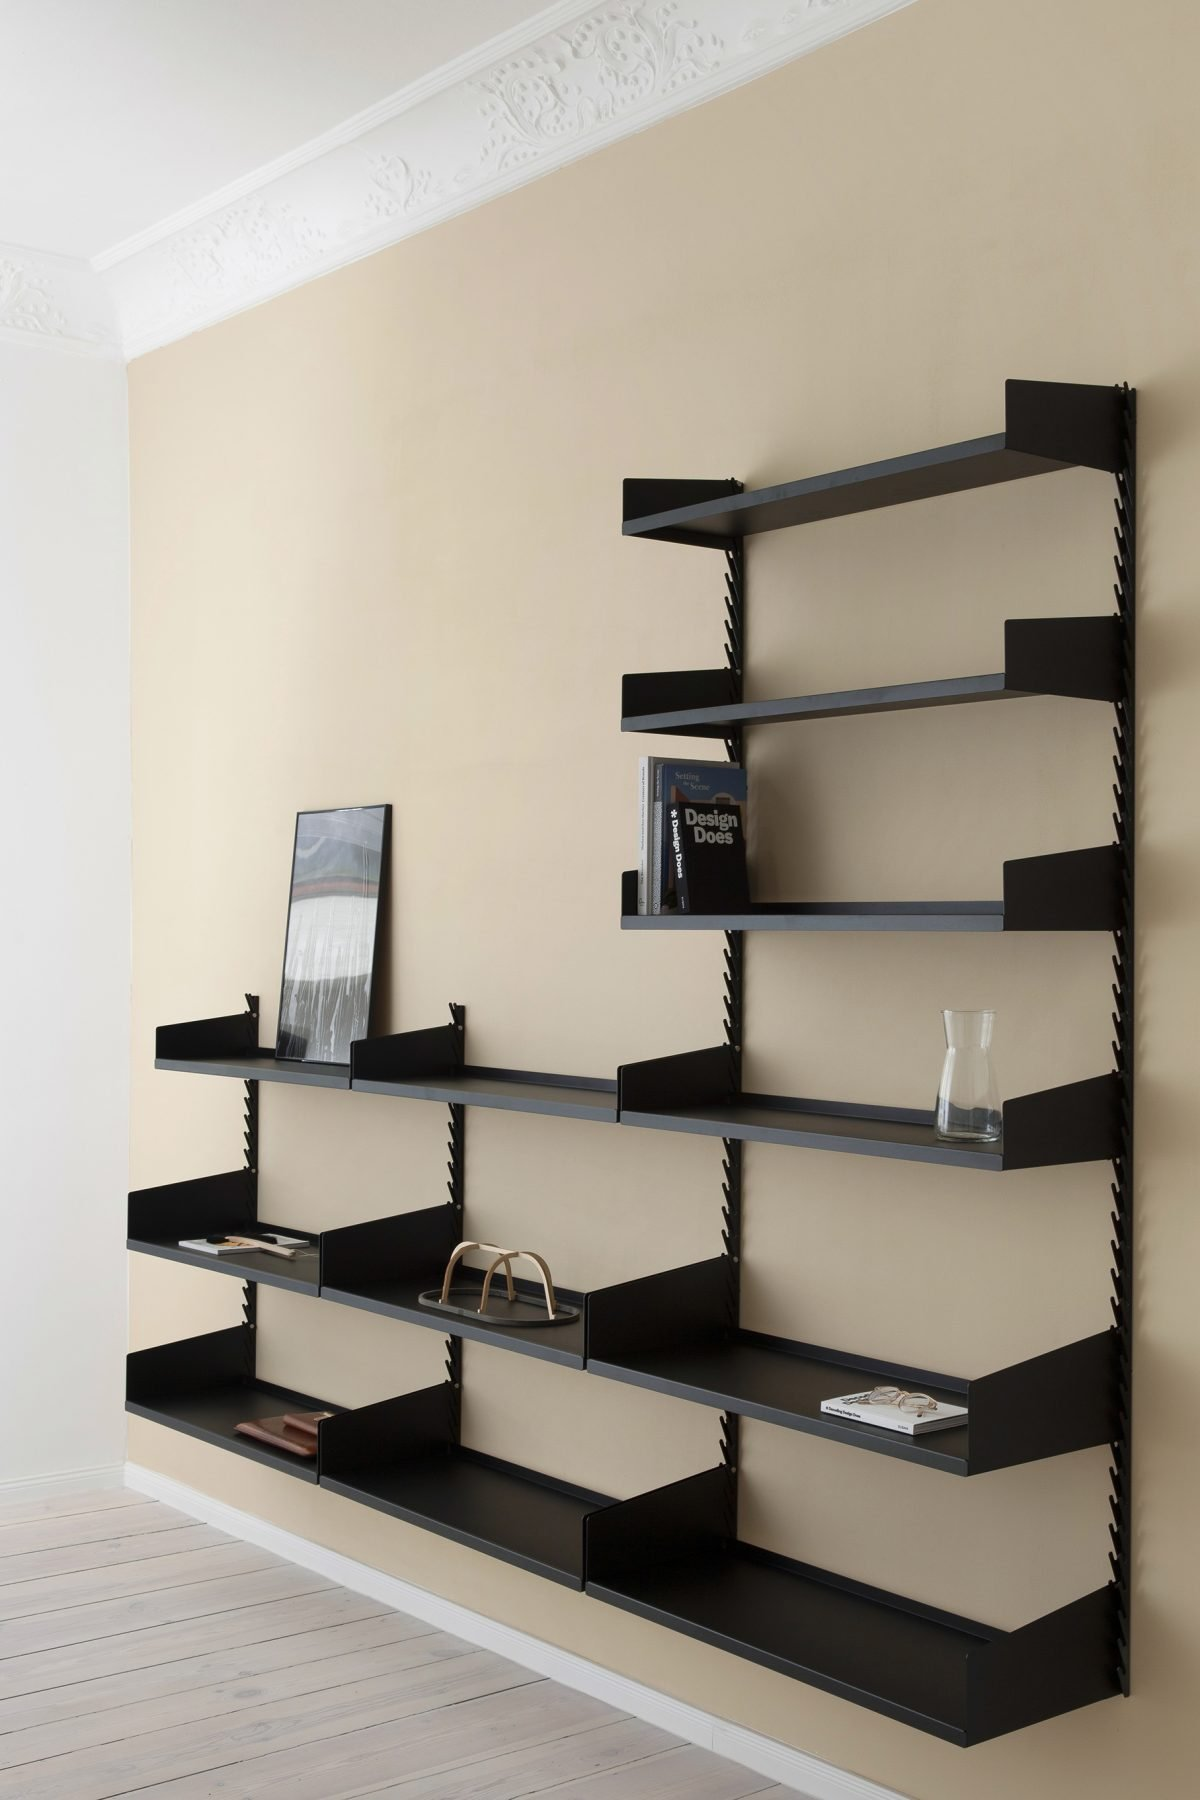 Even Better Shelf / Set 1 / Extension